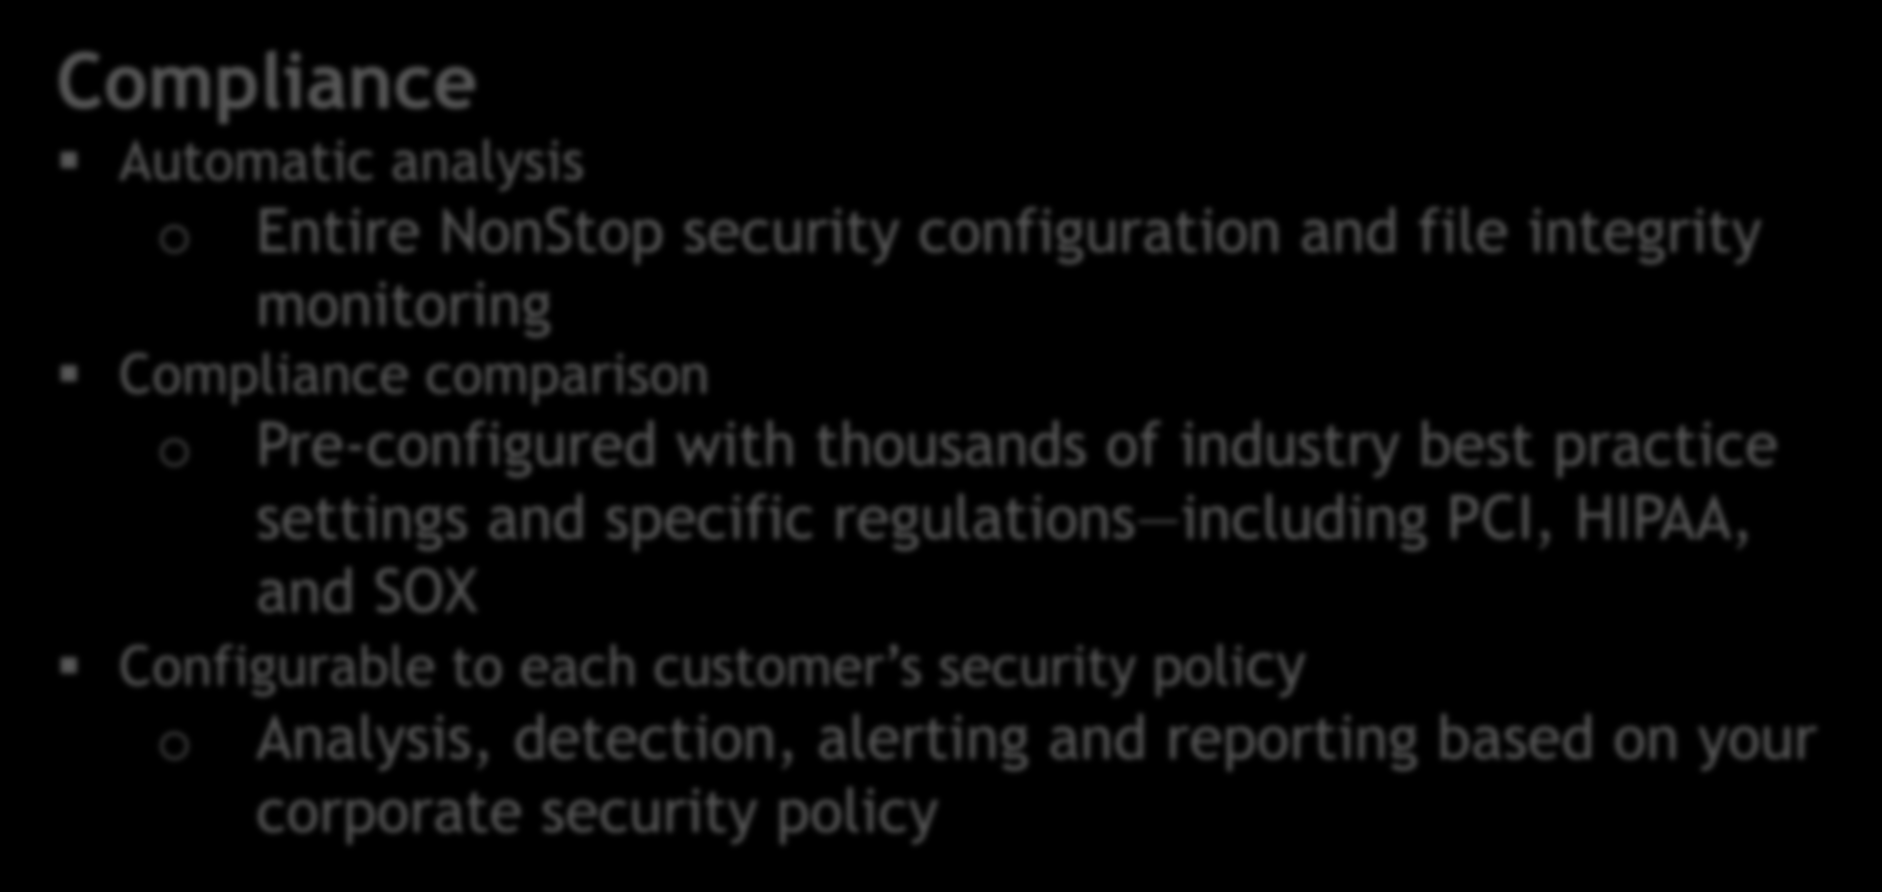 Compliance Security Policy Development Configuration Monitoring Compliance Alerting PCI, HIPAA, SOX Automatic analysis o Entire NonStop security configuration and file integrity monitoring Compliance